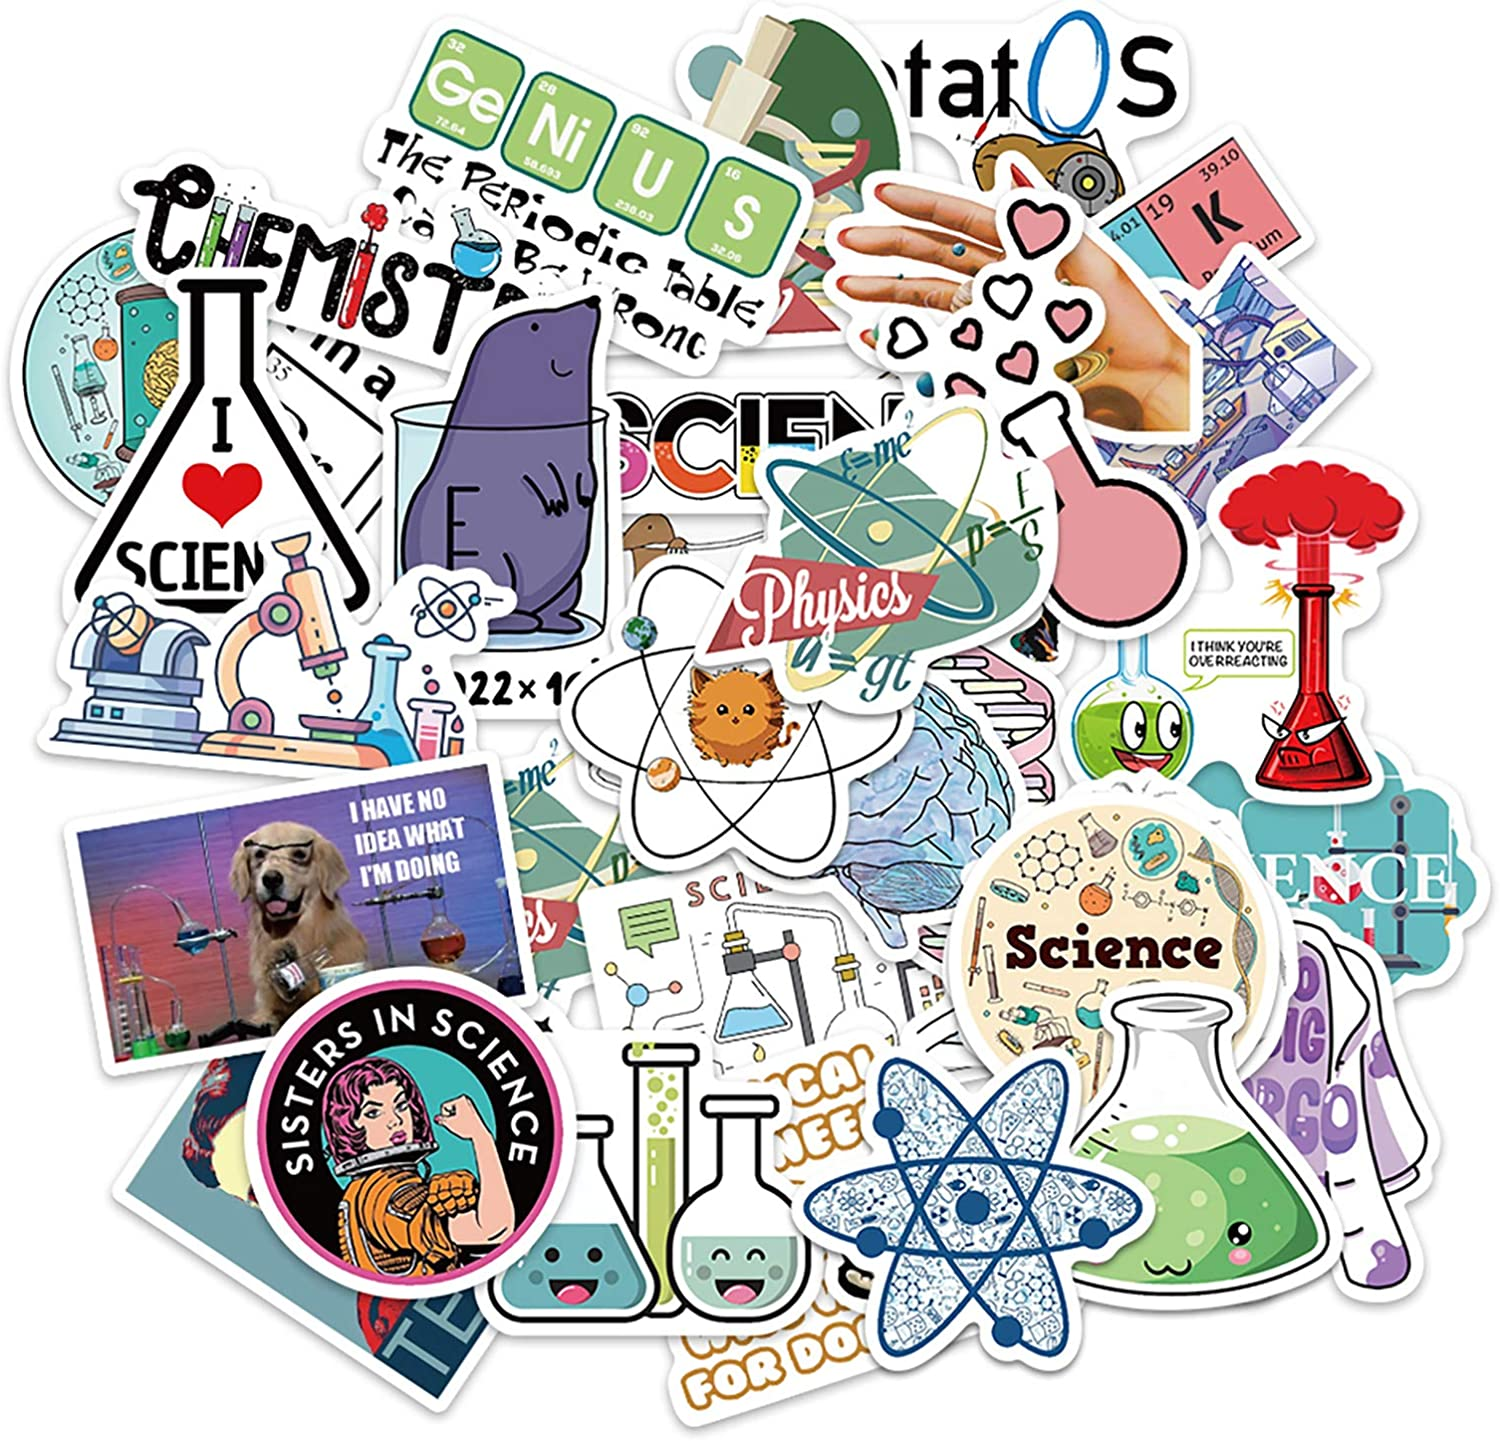 50 Pcs Science Stickers Experiment Decals for Water Bottle Hydro Flask Laptop Luggage Car Bike Bicycle Waterproof Vinyl Lab Stickers Pack